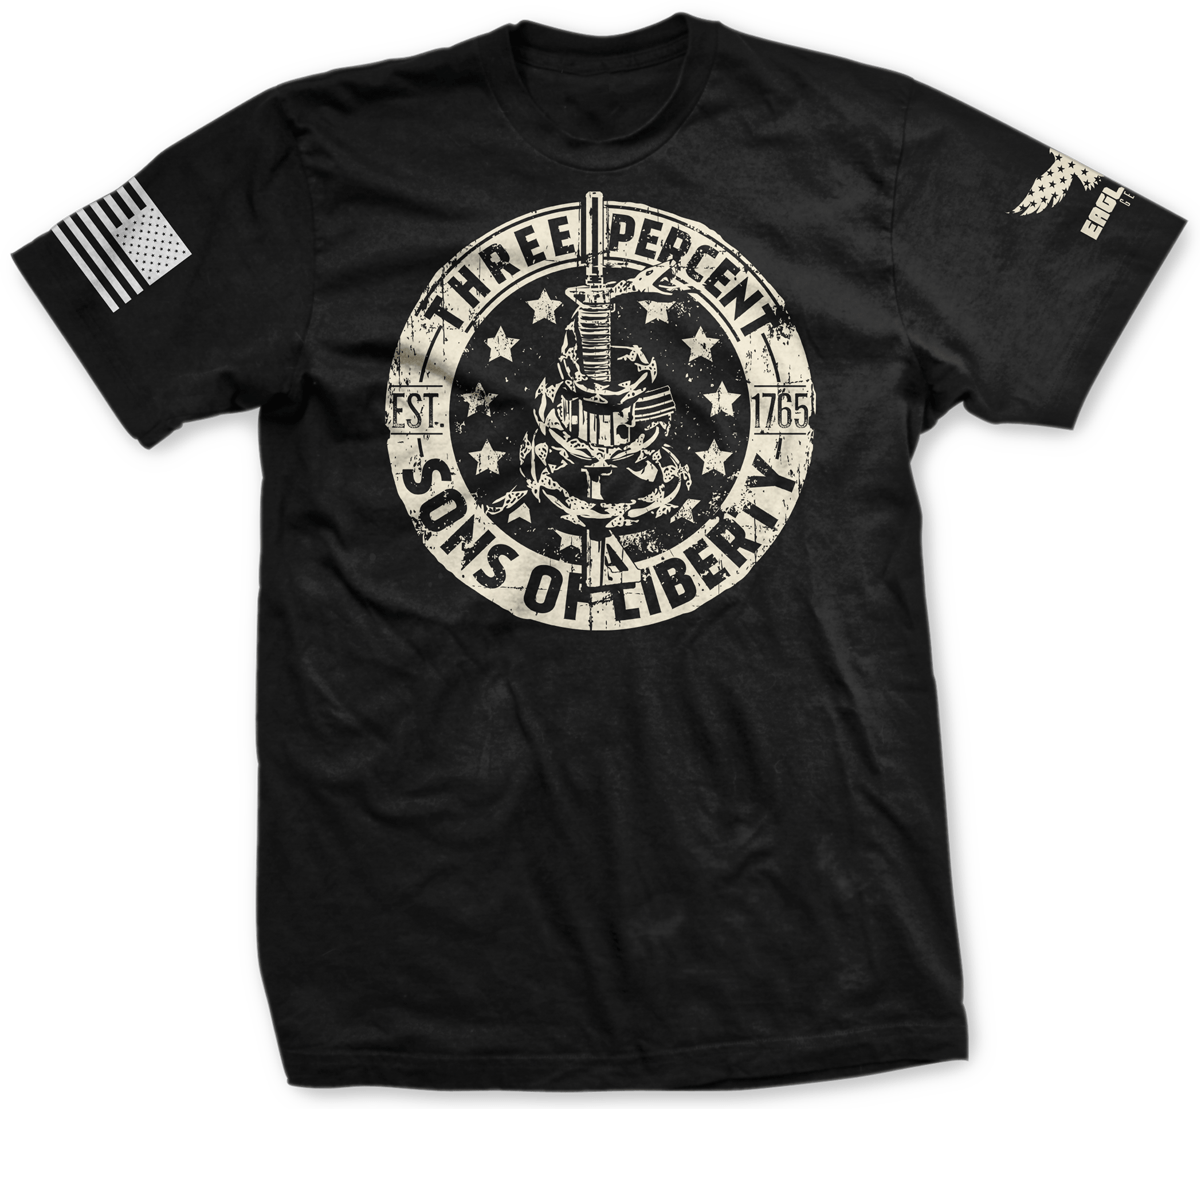 Threeper Sons Of Liberty Tee